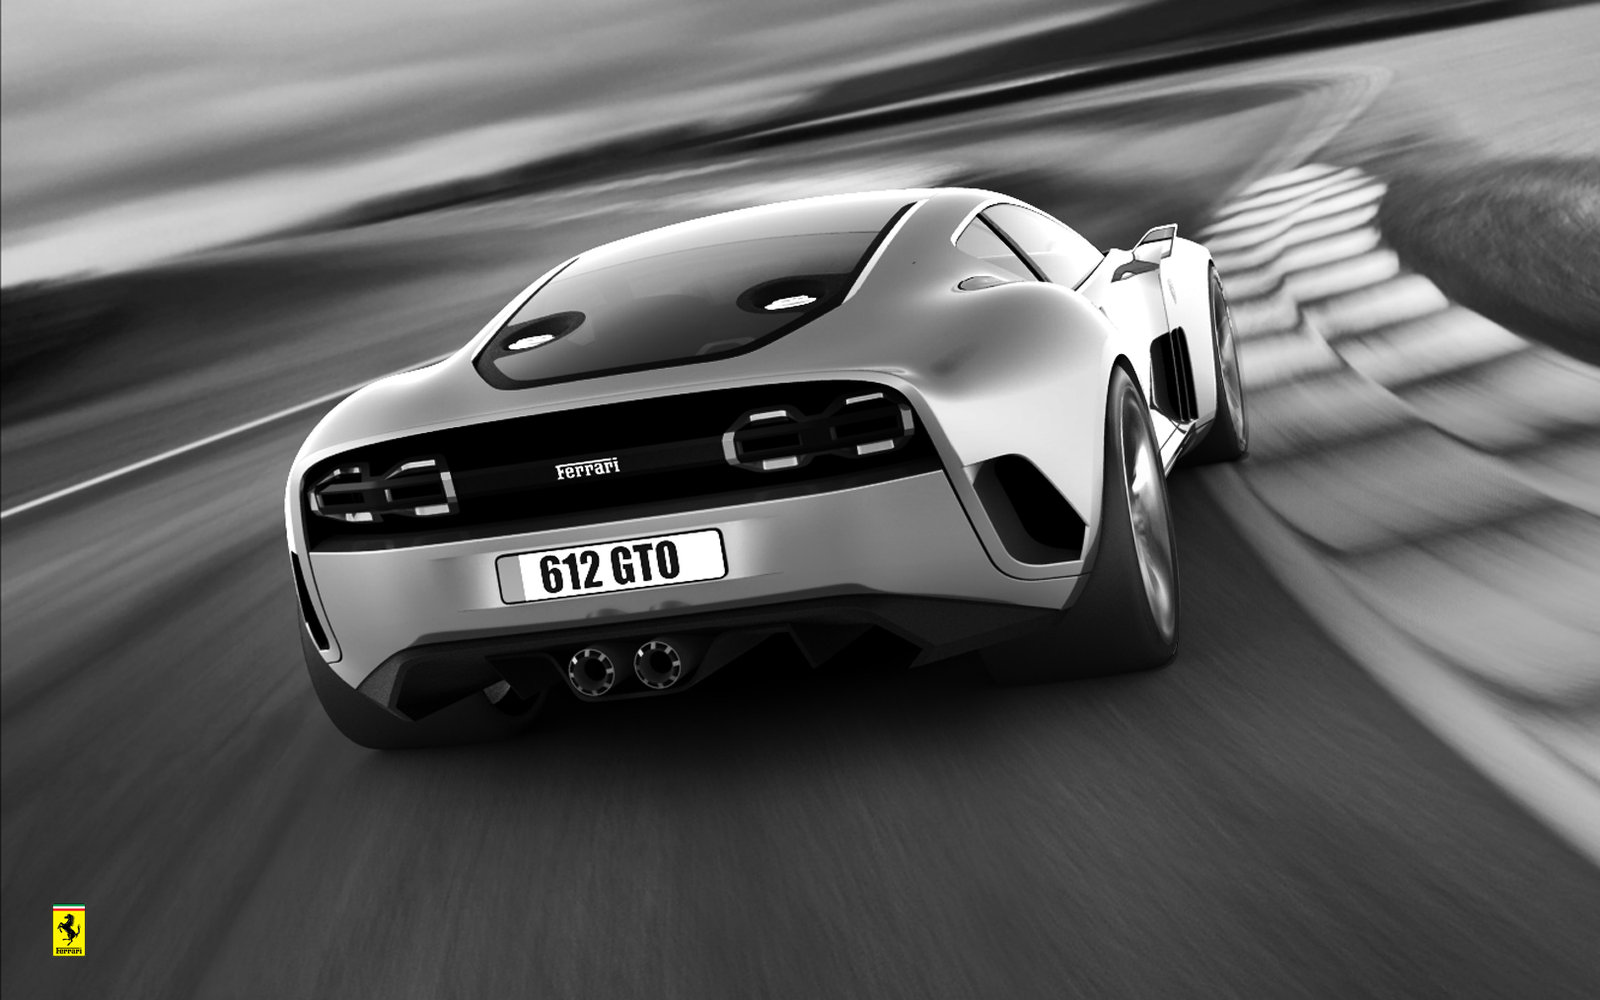 Ferrari 612 Gto >> Ferrari 612 Gto Wallpapers Vehicles Hq Ferrari 612 Gto